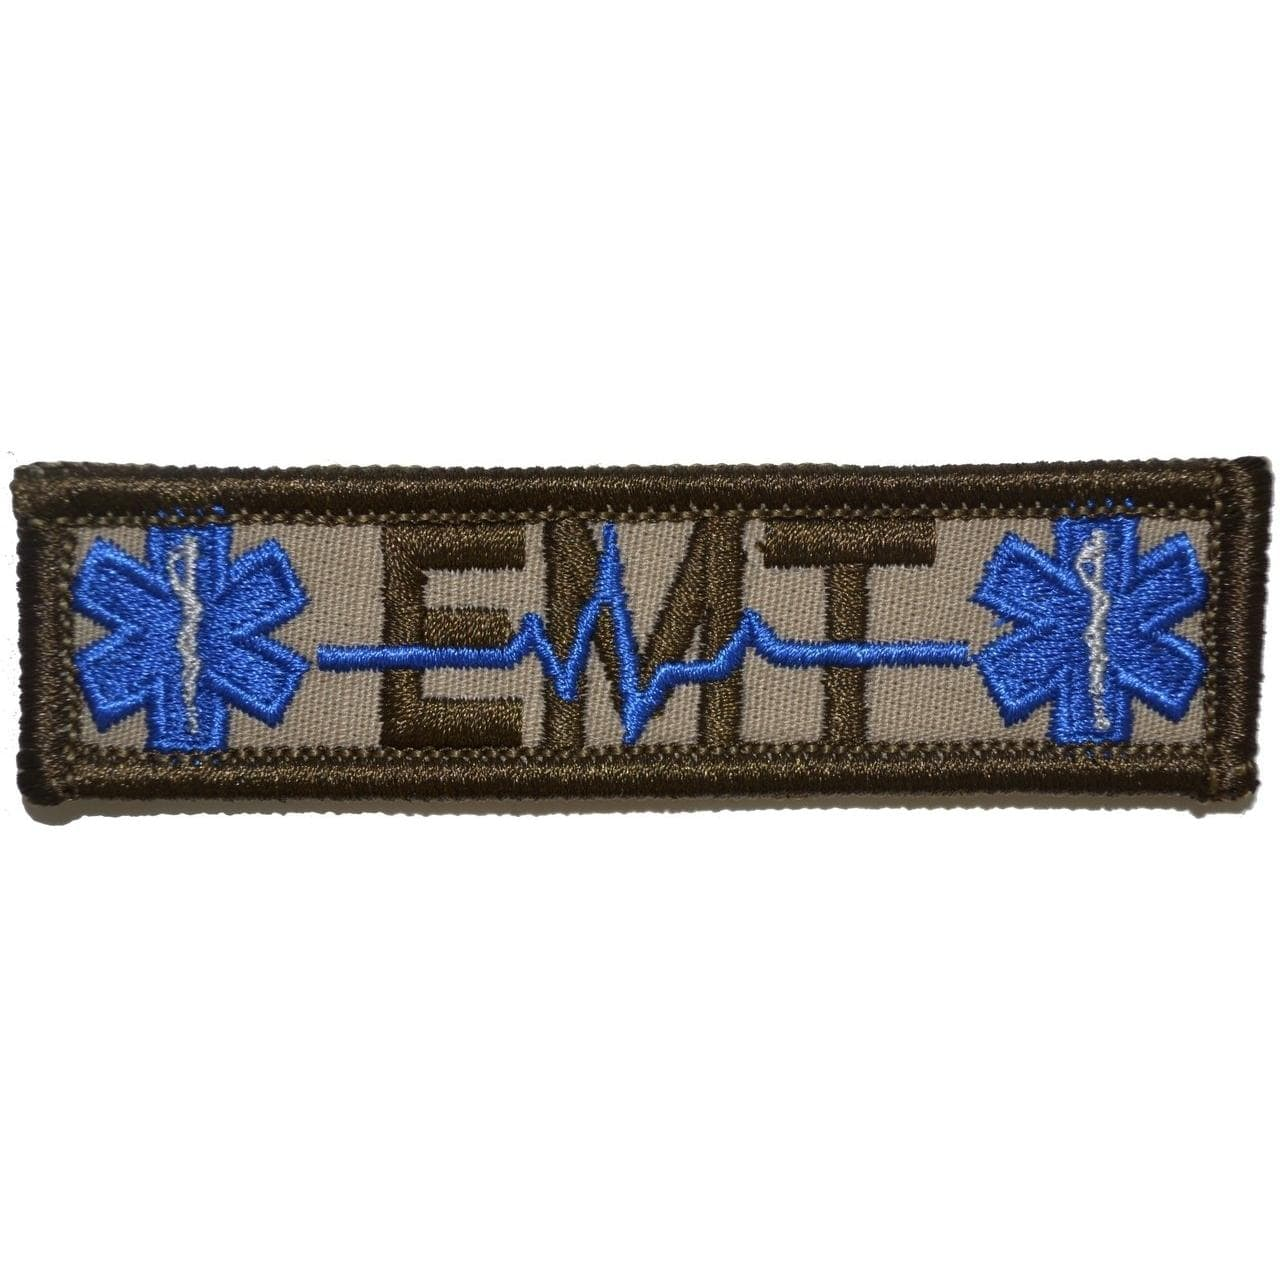 Tactical Gear Junkie Patches Desert Sand EMT Heartbeat and Stars of Life - 1x3.75 Patch